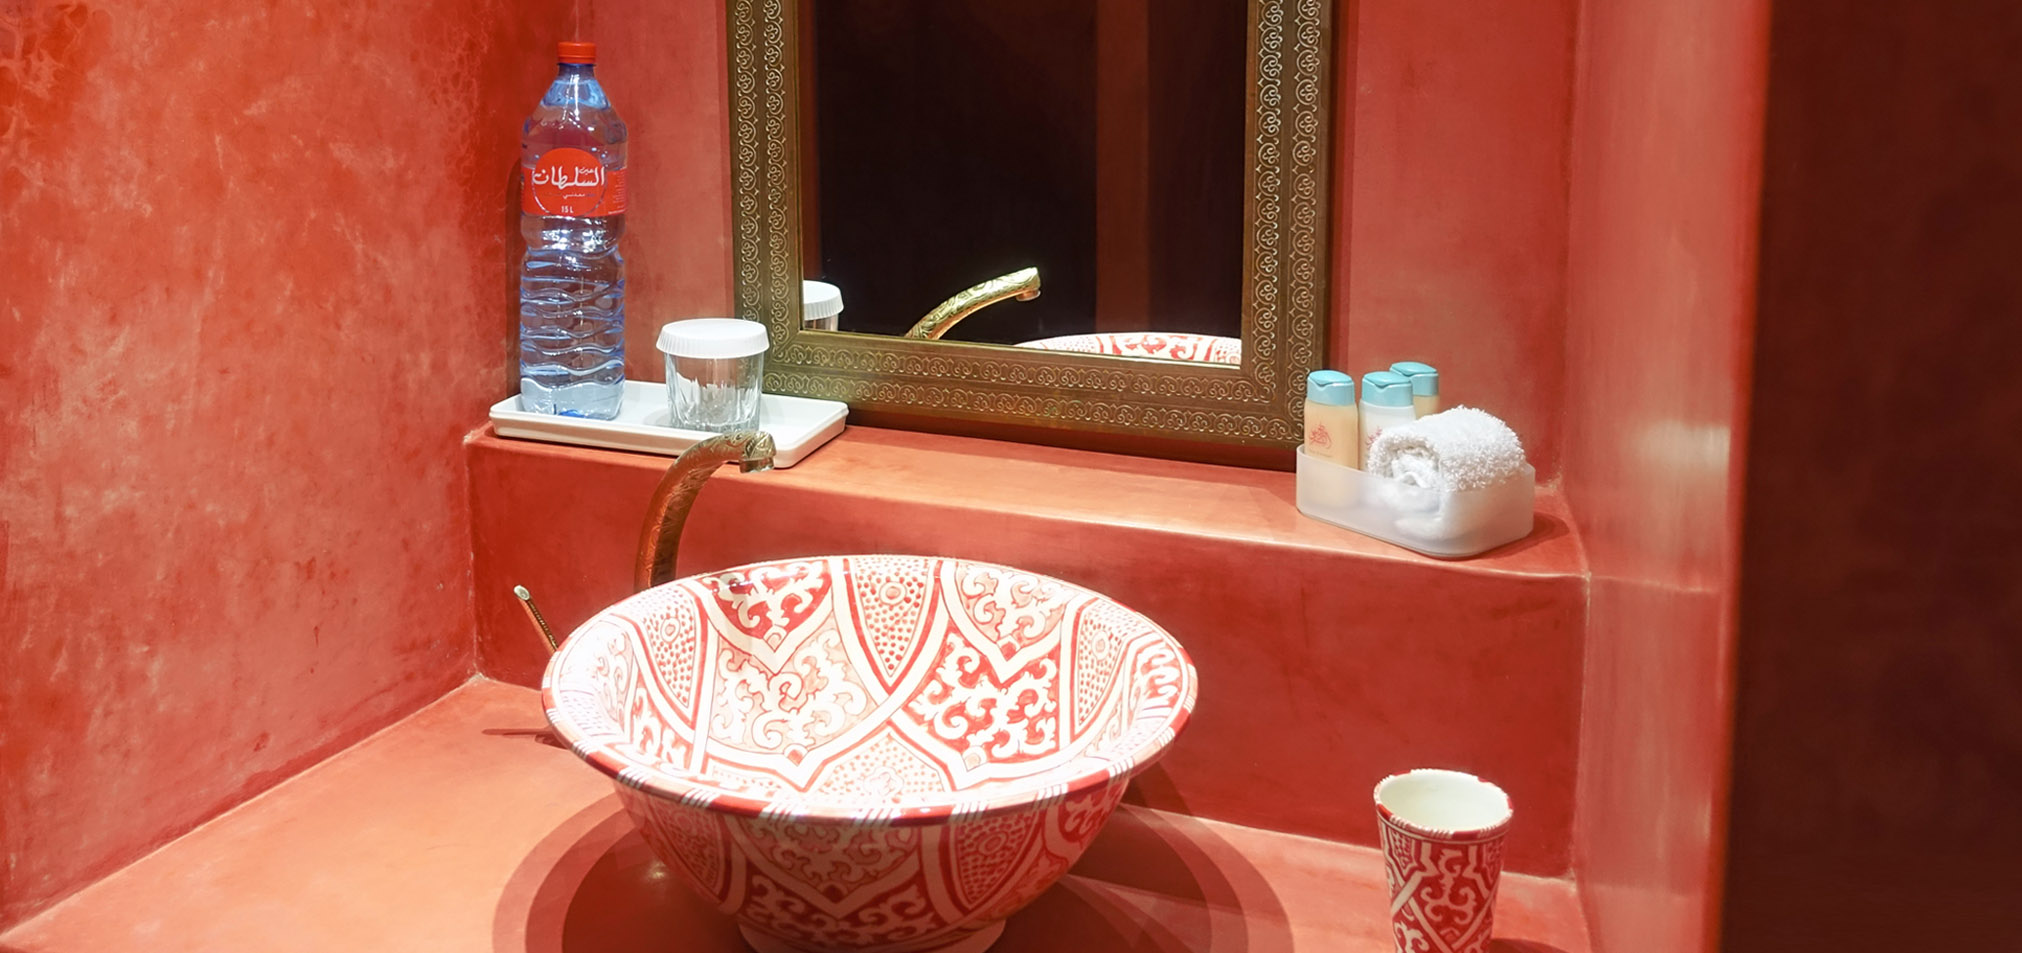 4. Ahmar Bathroom